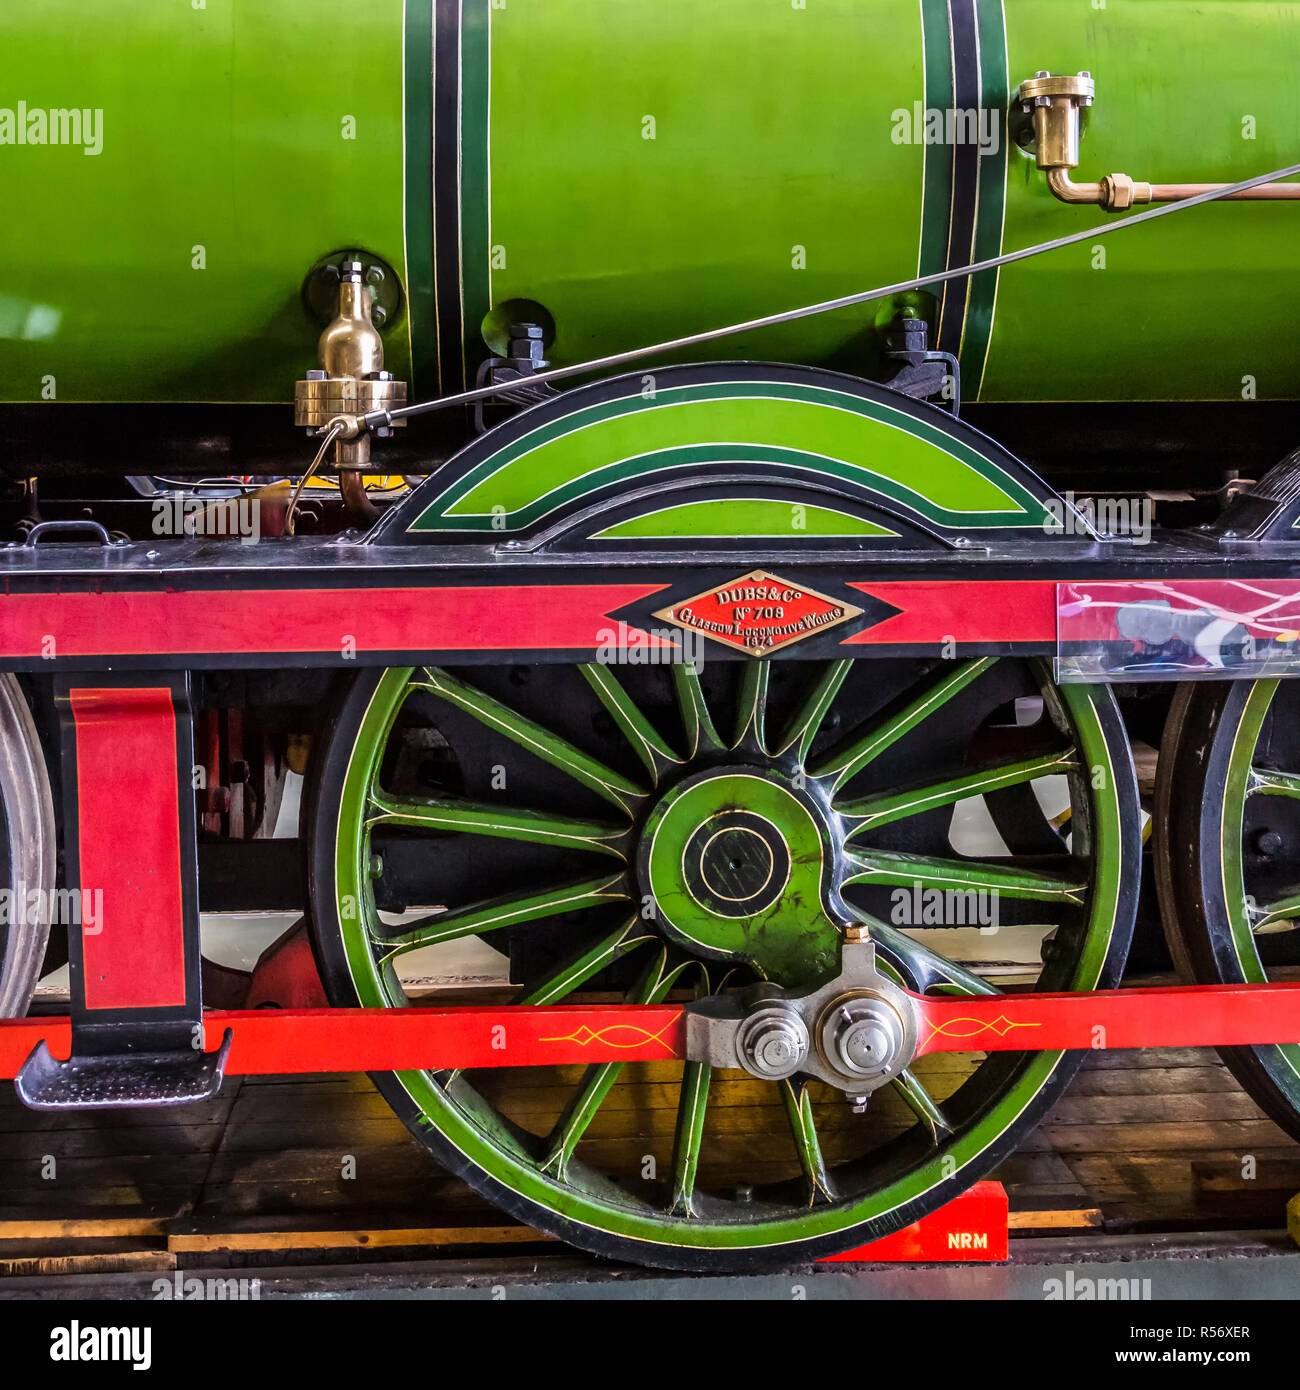 Early days of steam locomotives at National Railway Museum. Stock Photo